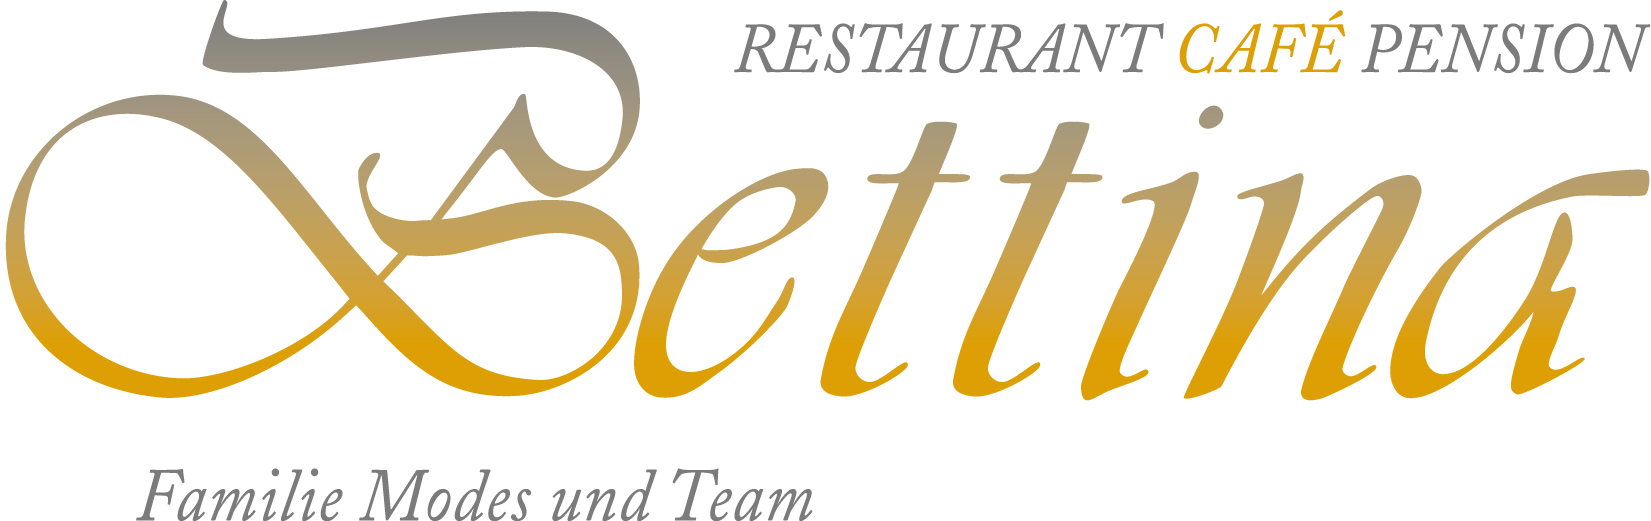 Café-Restaurant Bettina